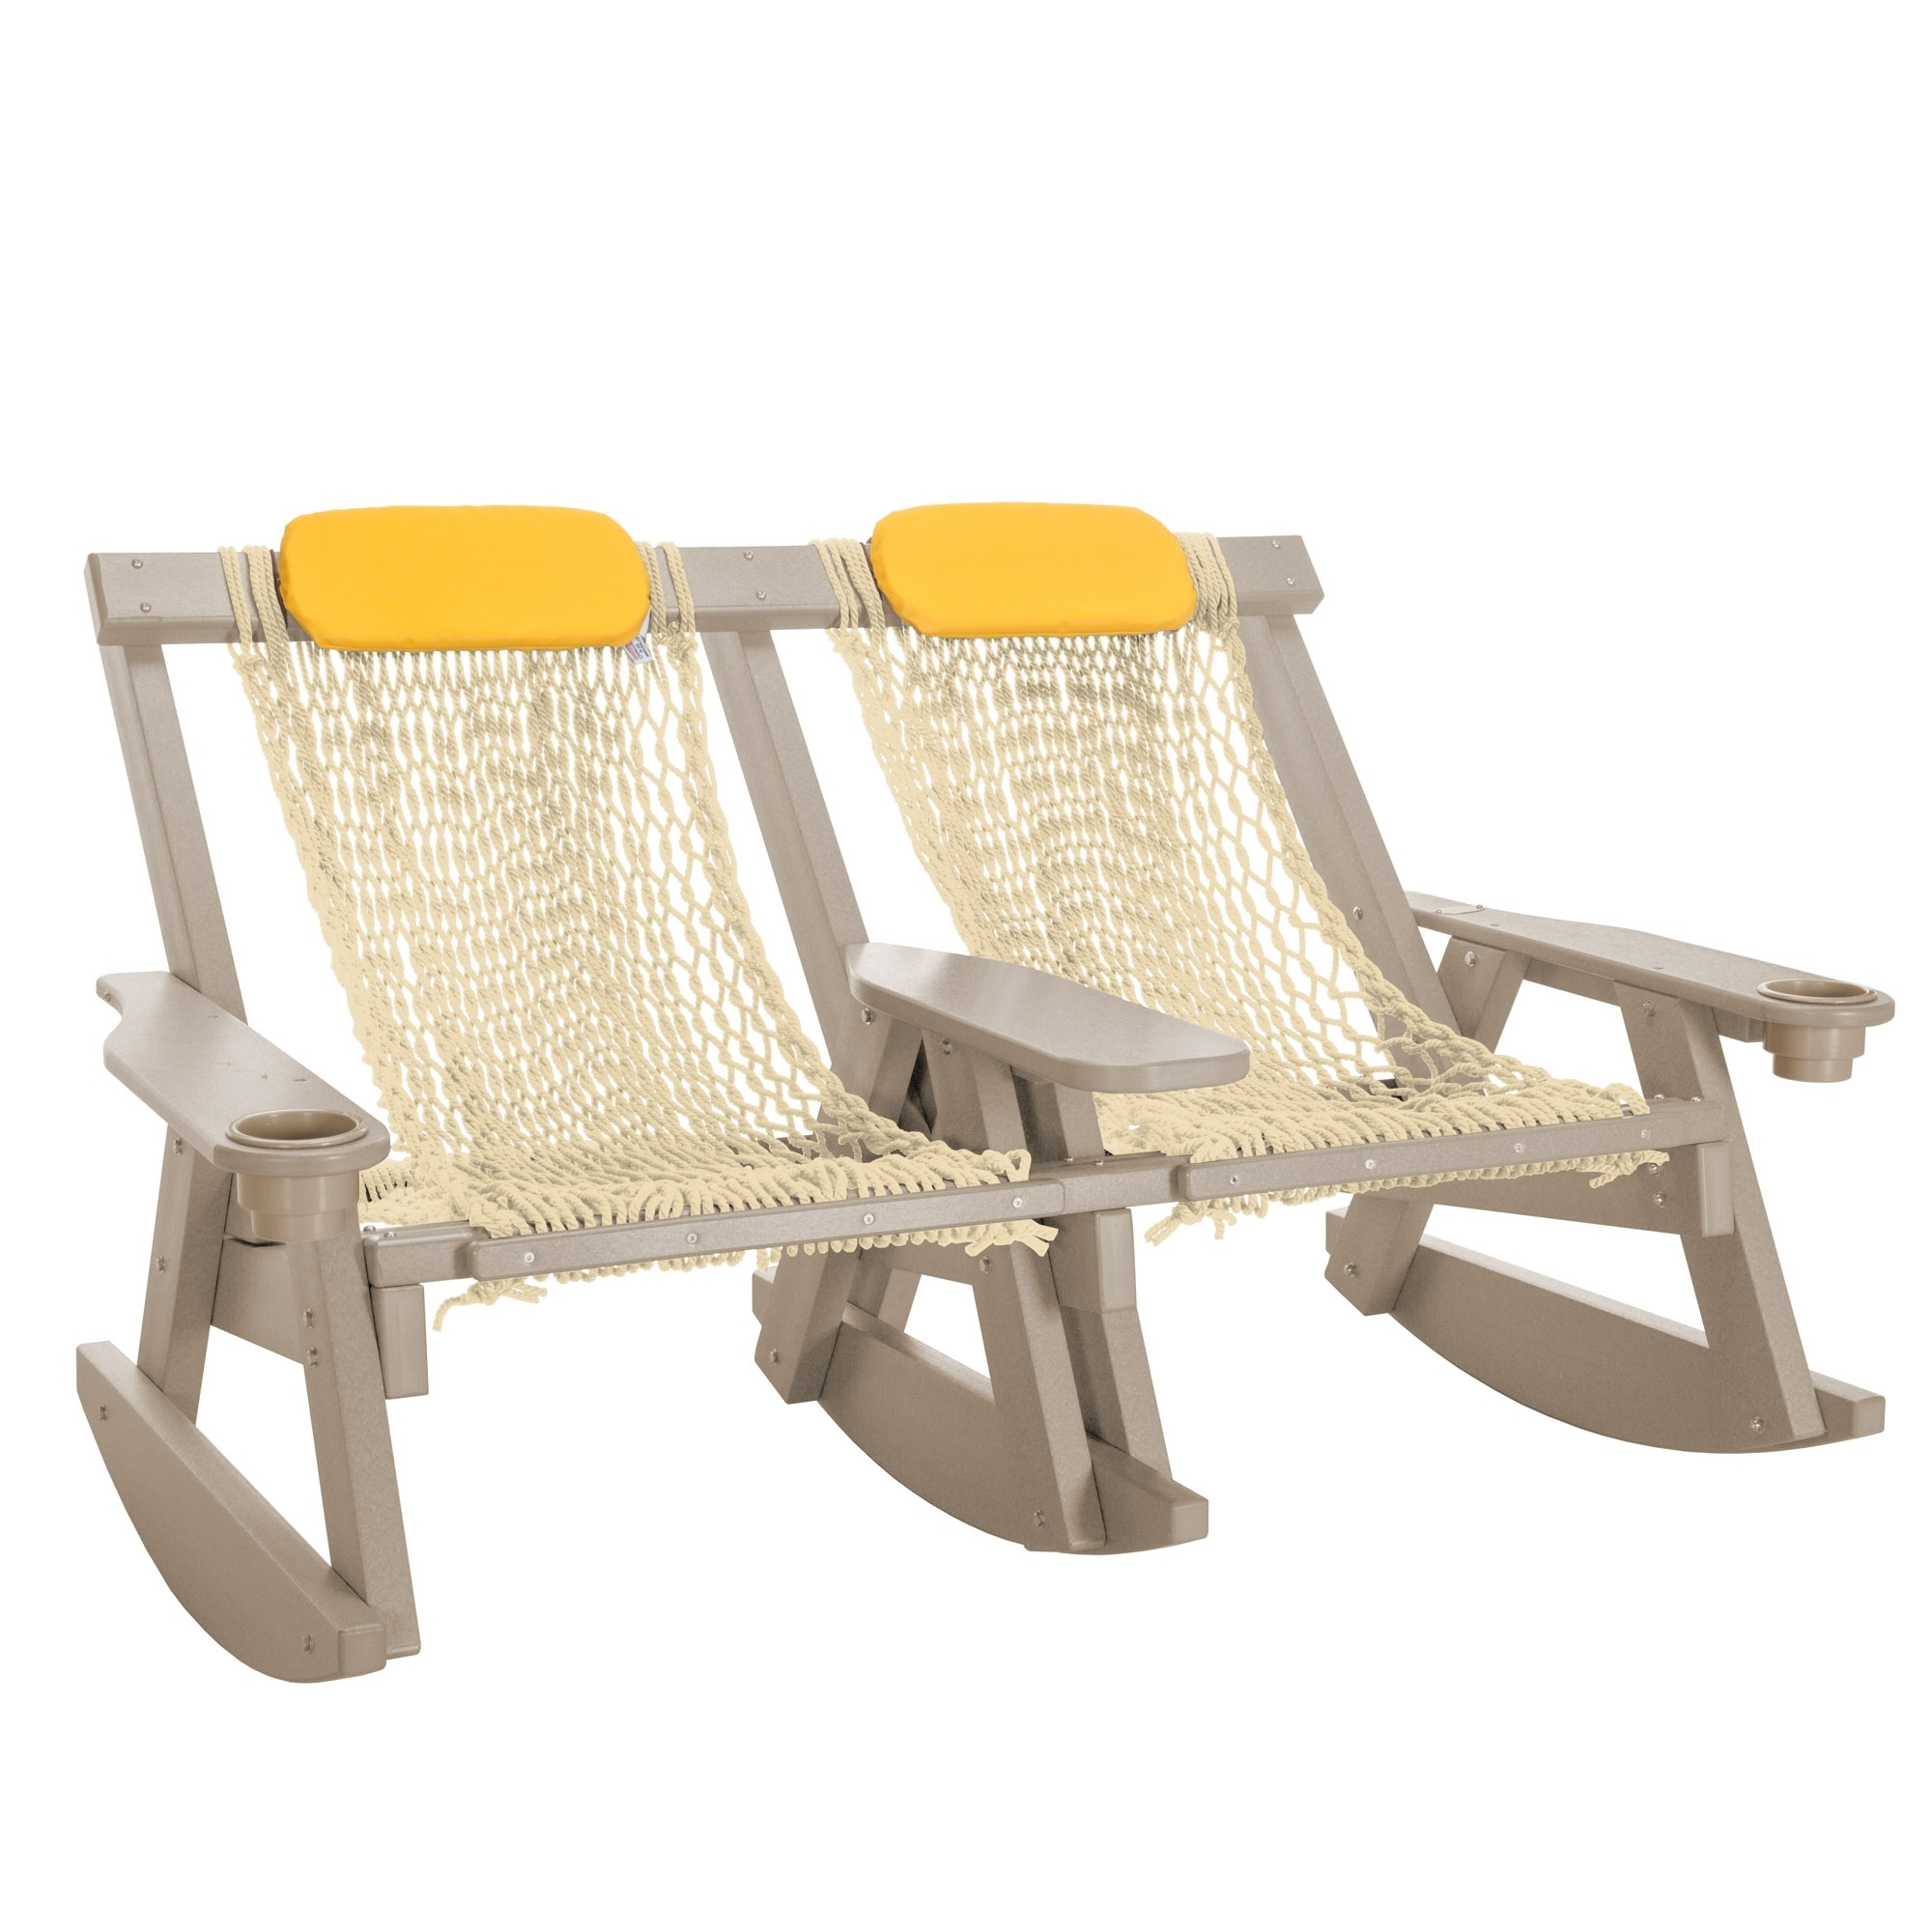 Nags Head Hammocks Durawood Rocking Chairs Weatherwood Double With Famous Yellow Outdoor Rocking Chairs (View 20 of 20)